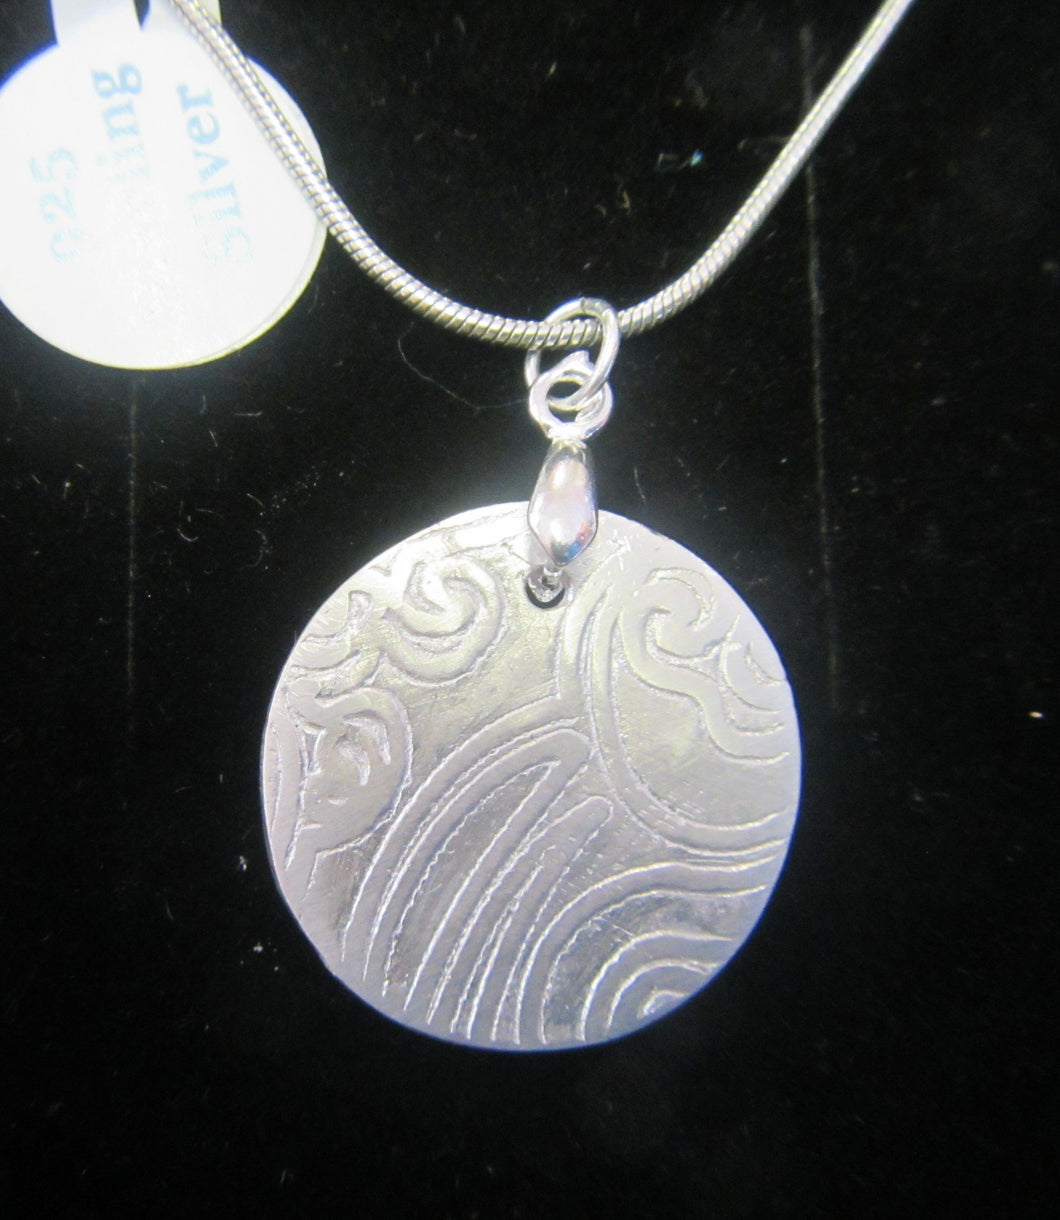 Handcrafted silver patterned disk pendant with 925 Silver necklace